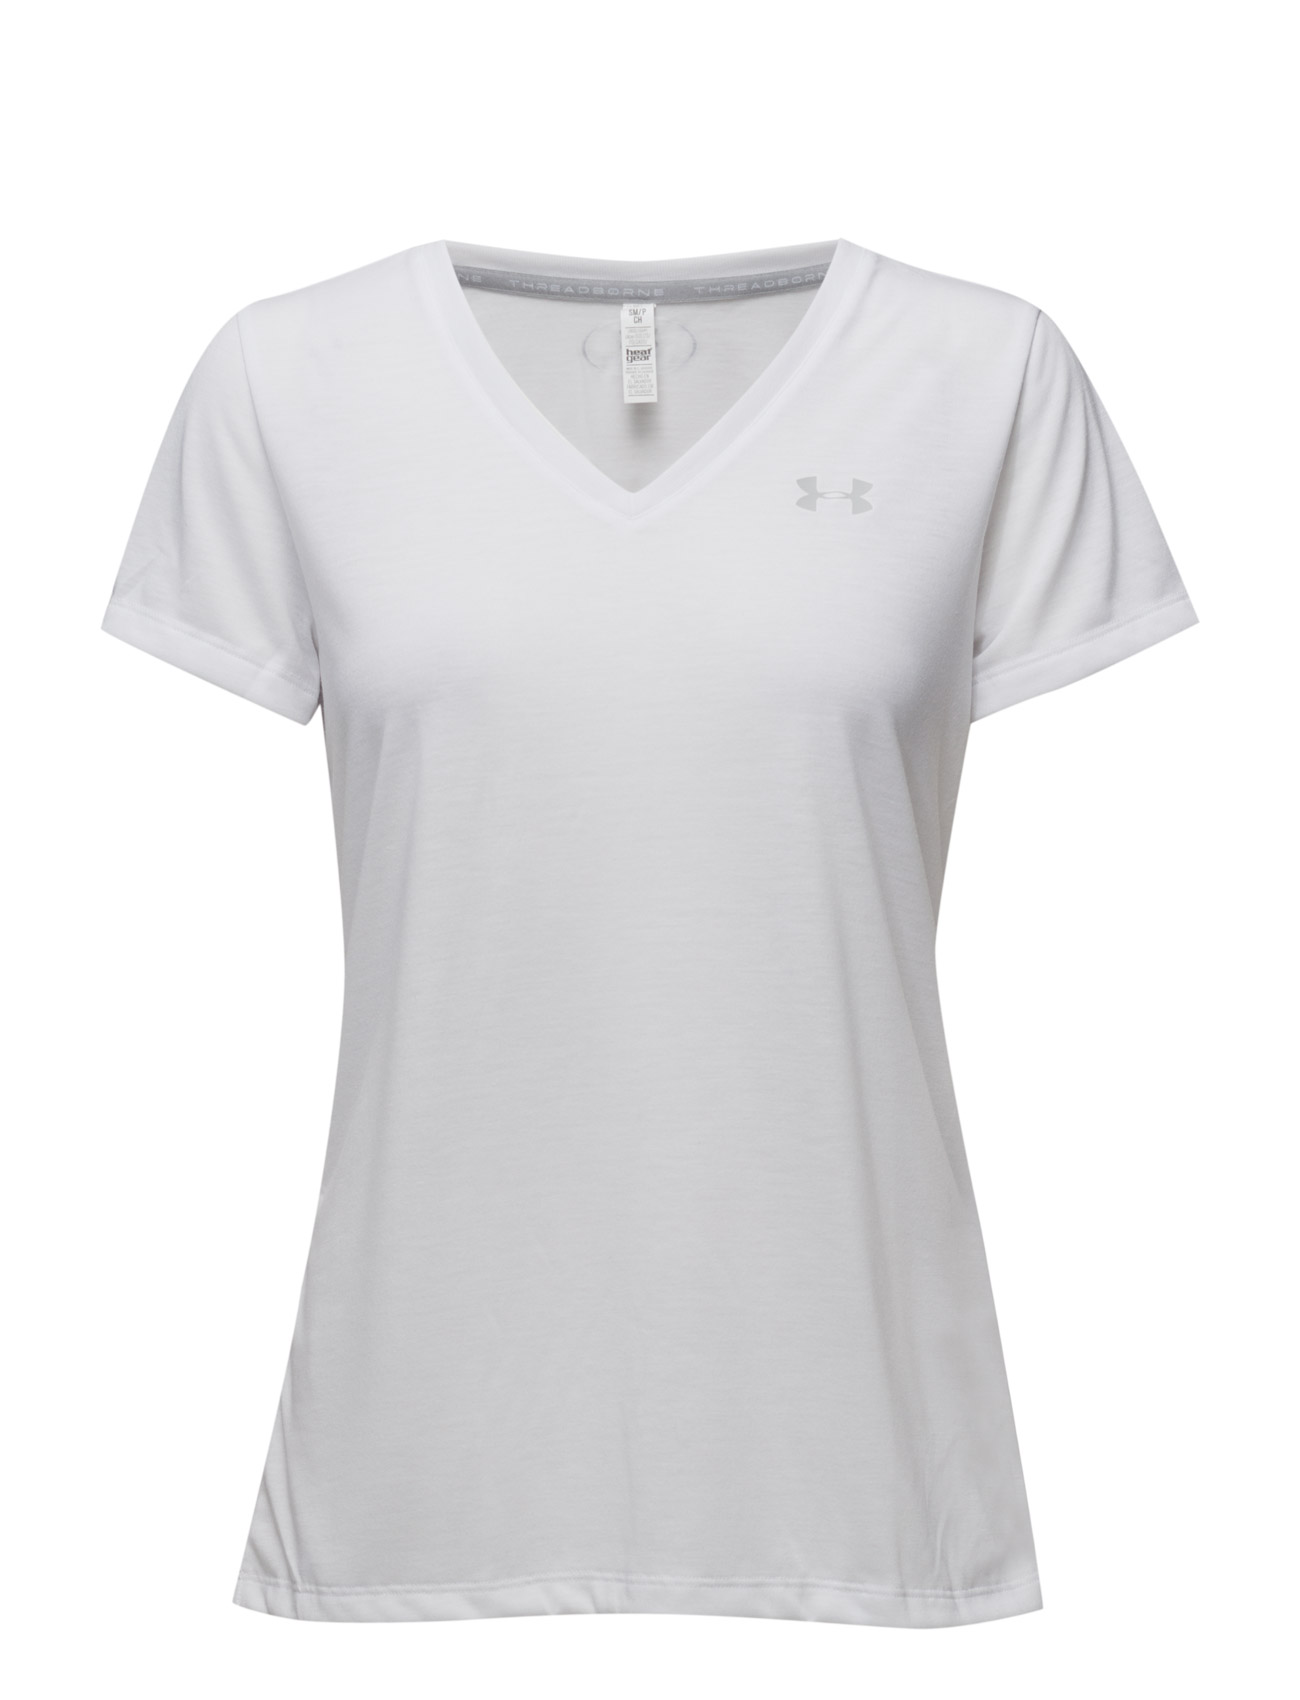 Threadborne Train Ssv Under Armour Sports toppe til Kvinder i